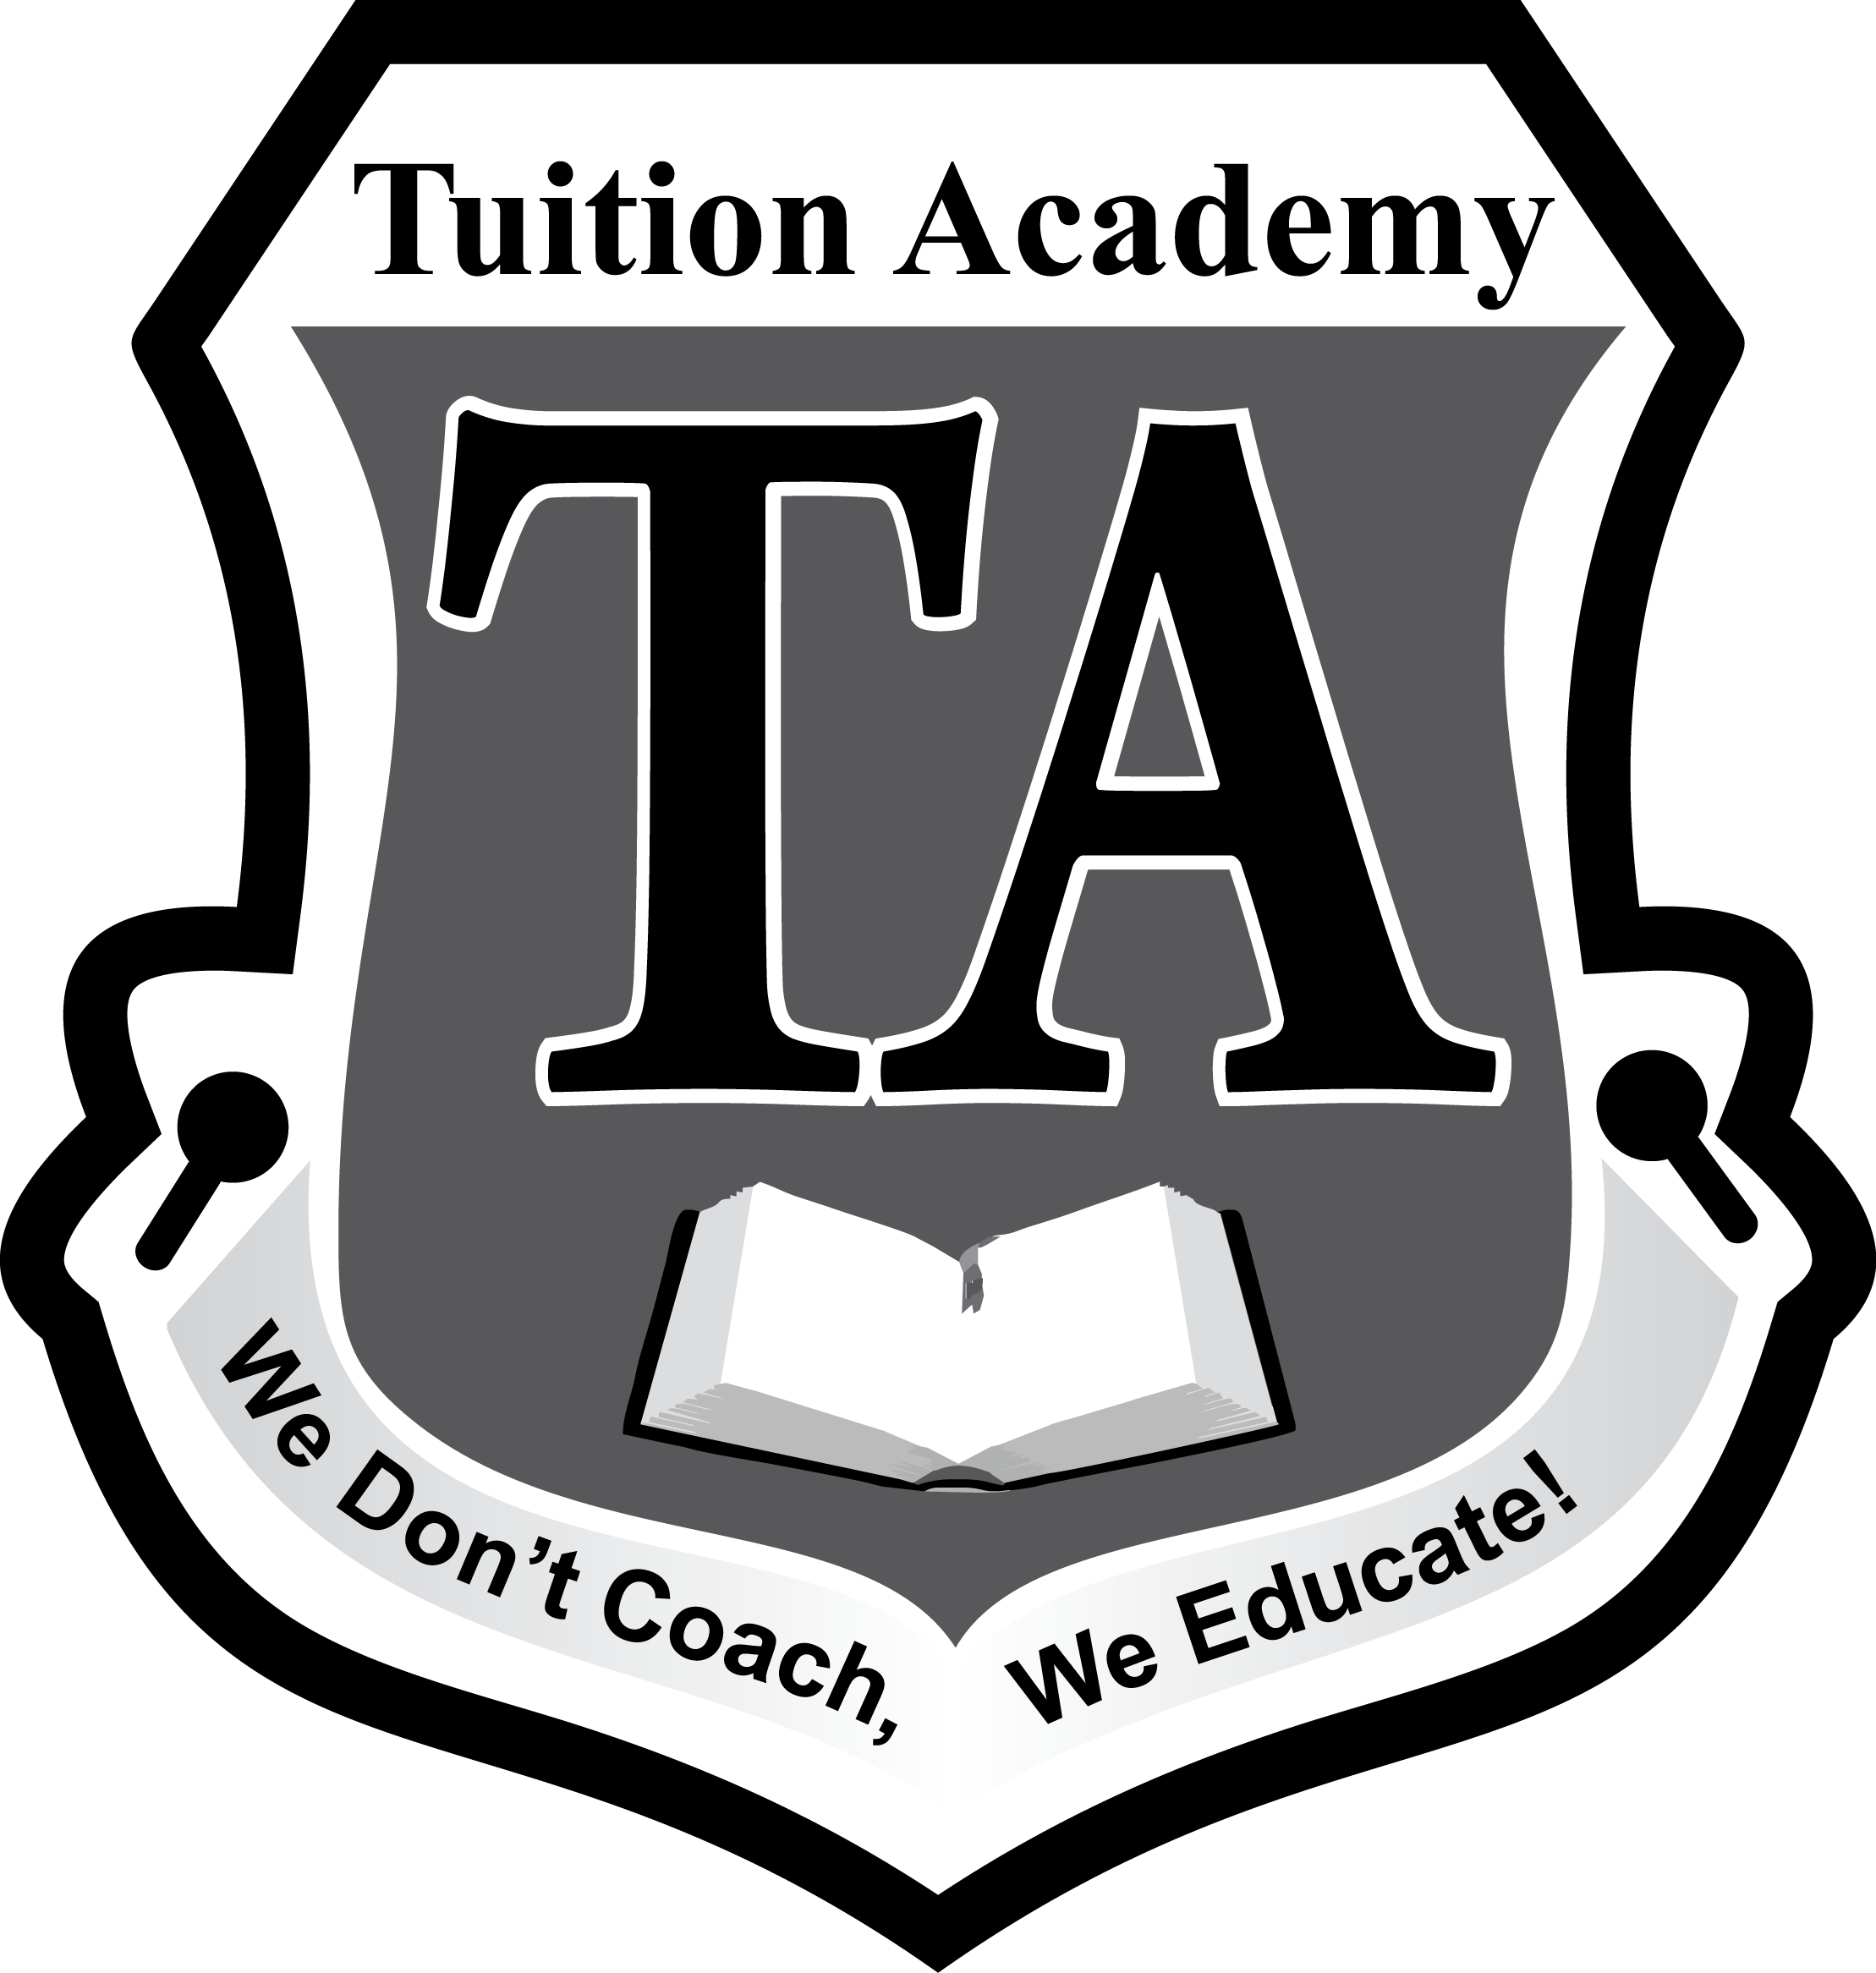 Read Tuition Academy Medway Reviews